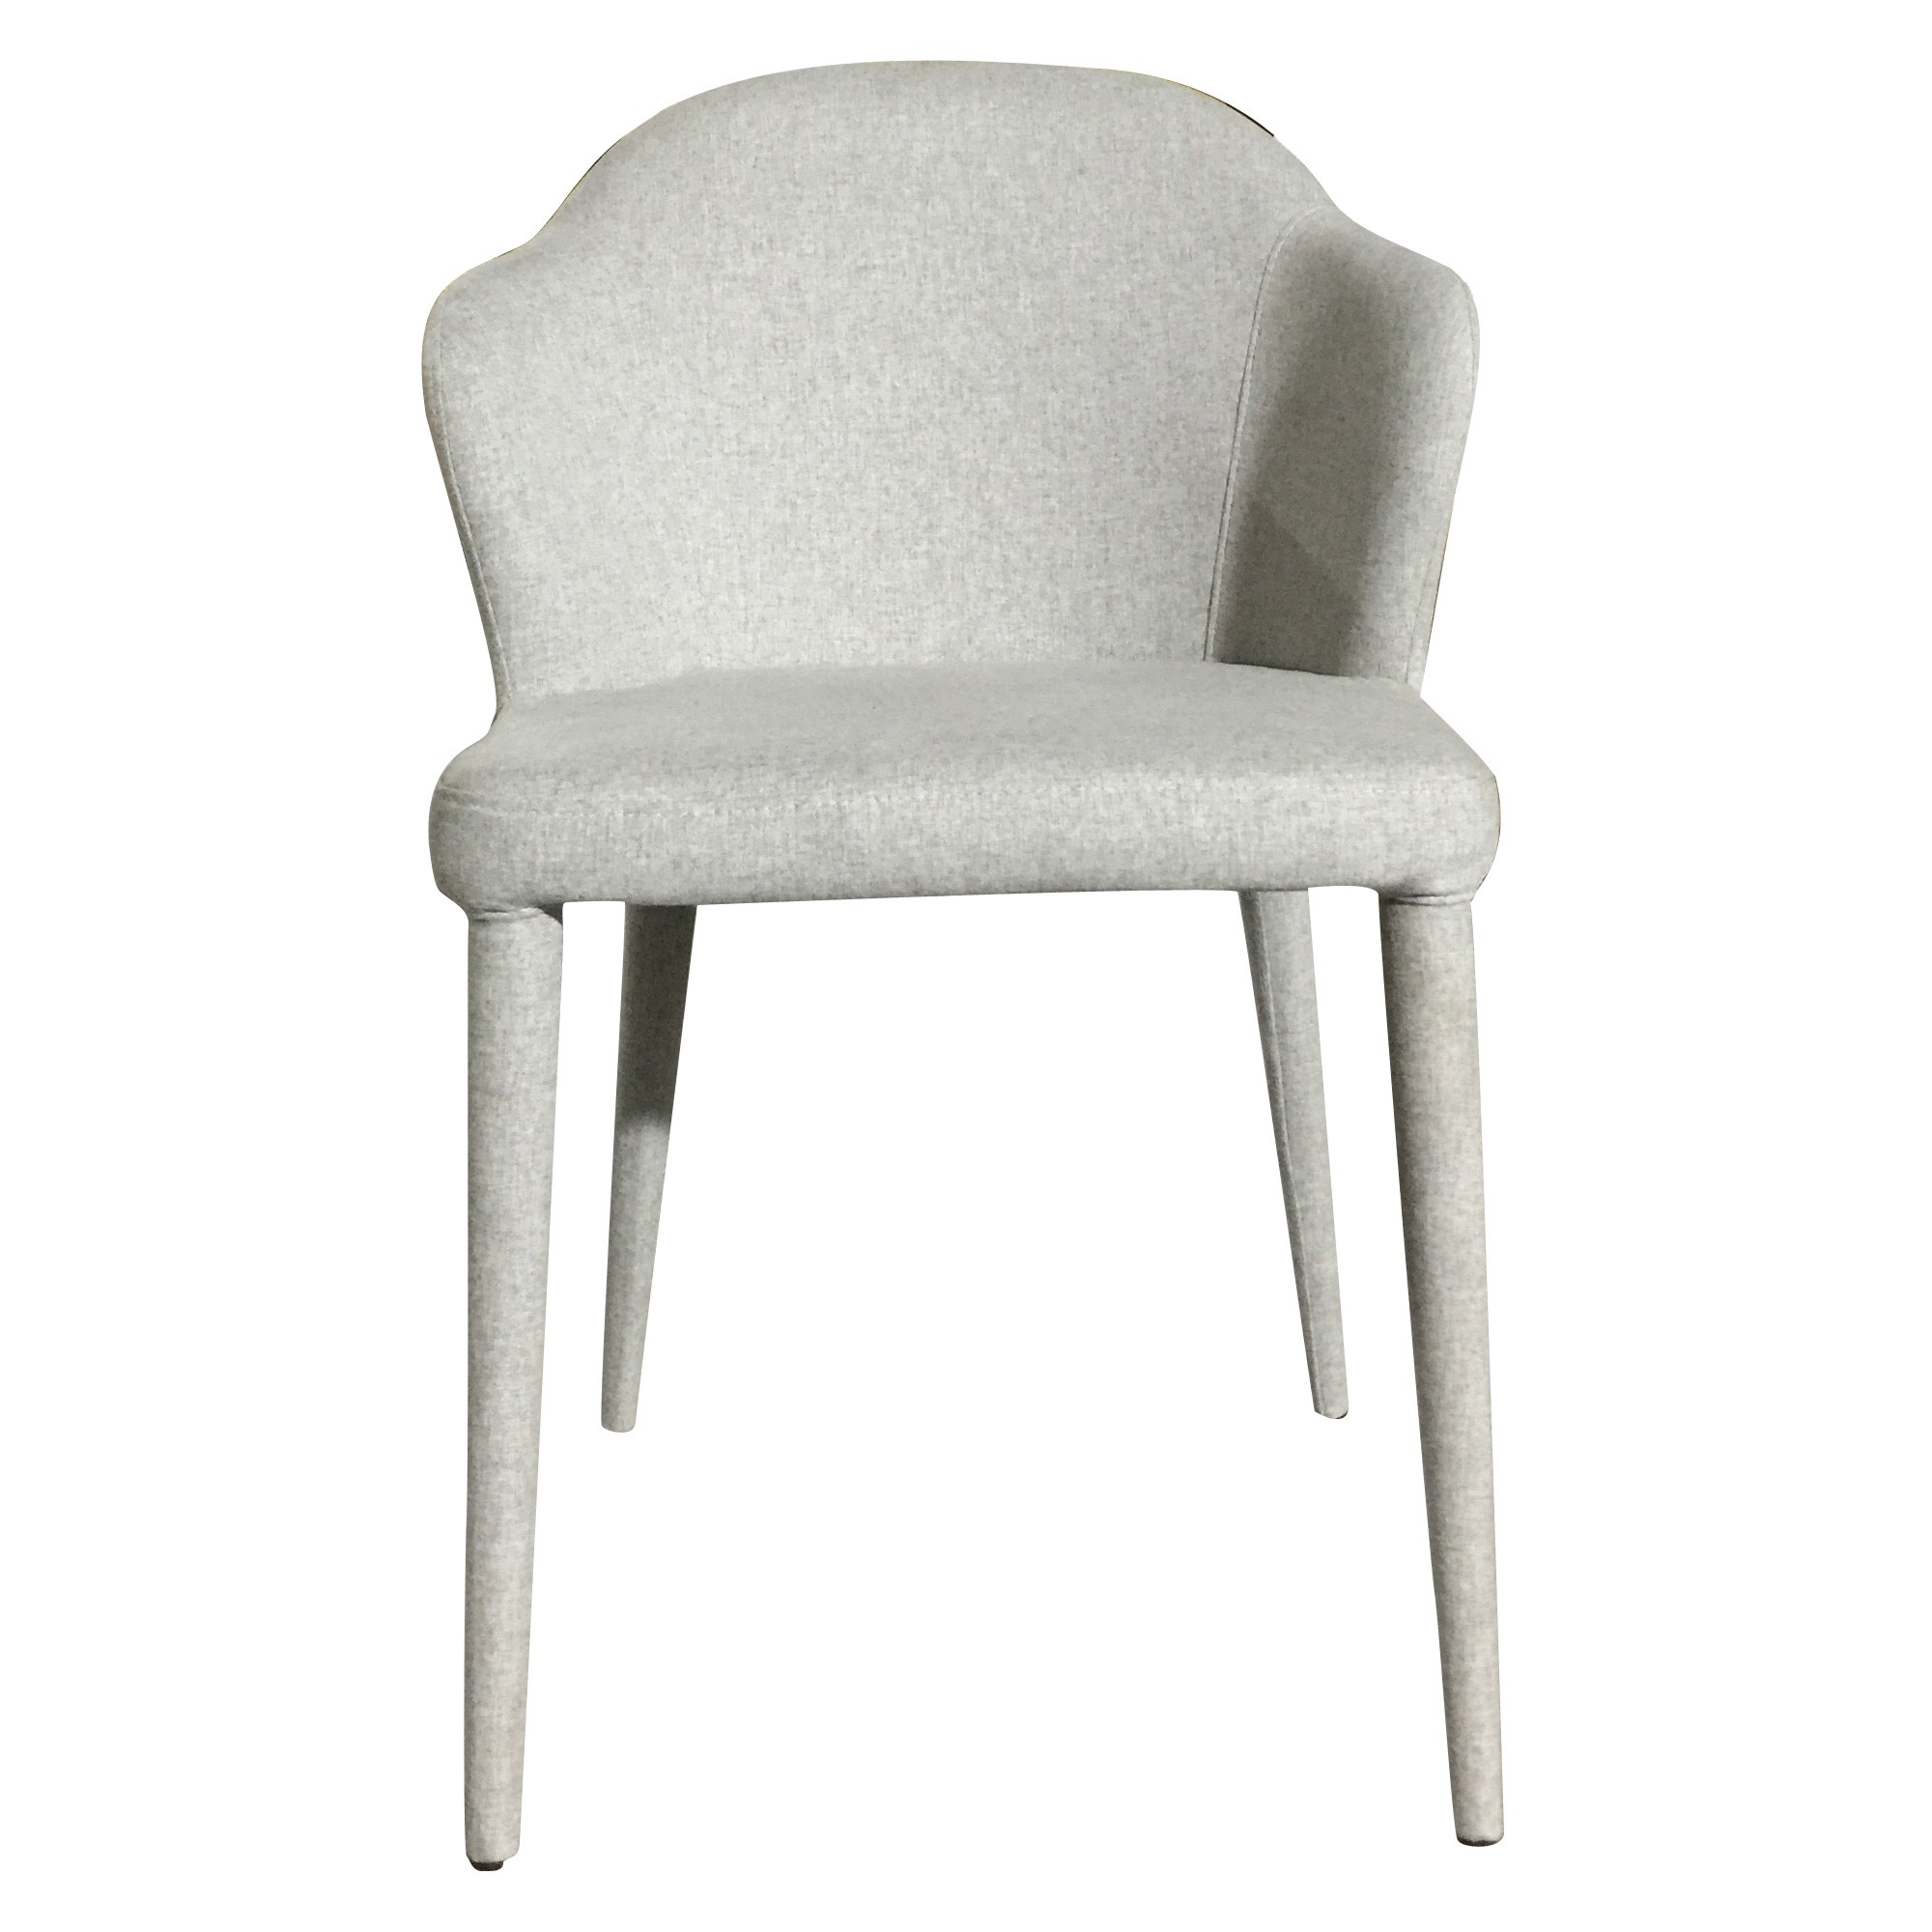 Mario Commercial Grade Fabric Dining Chair, Silver